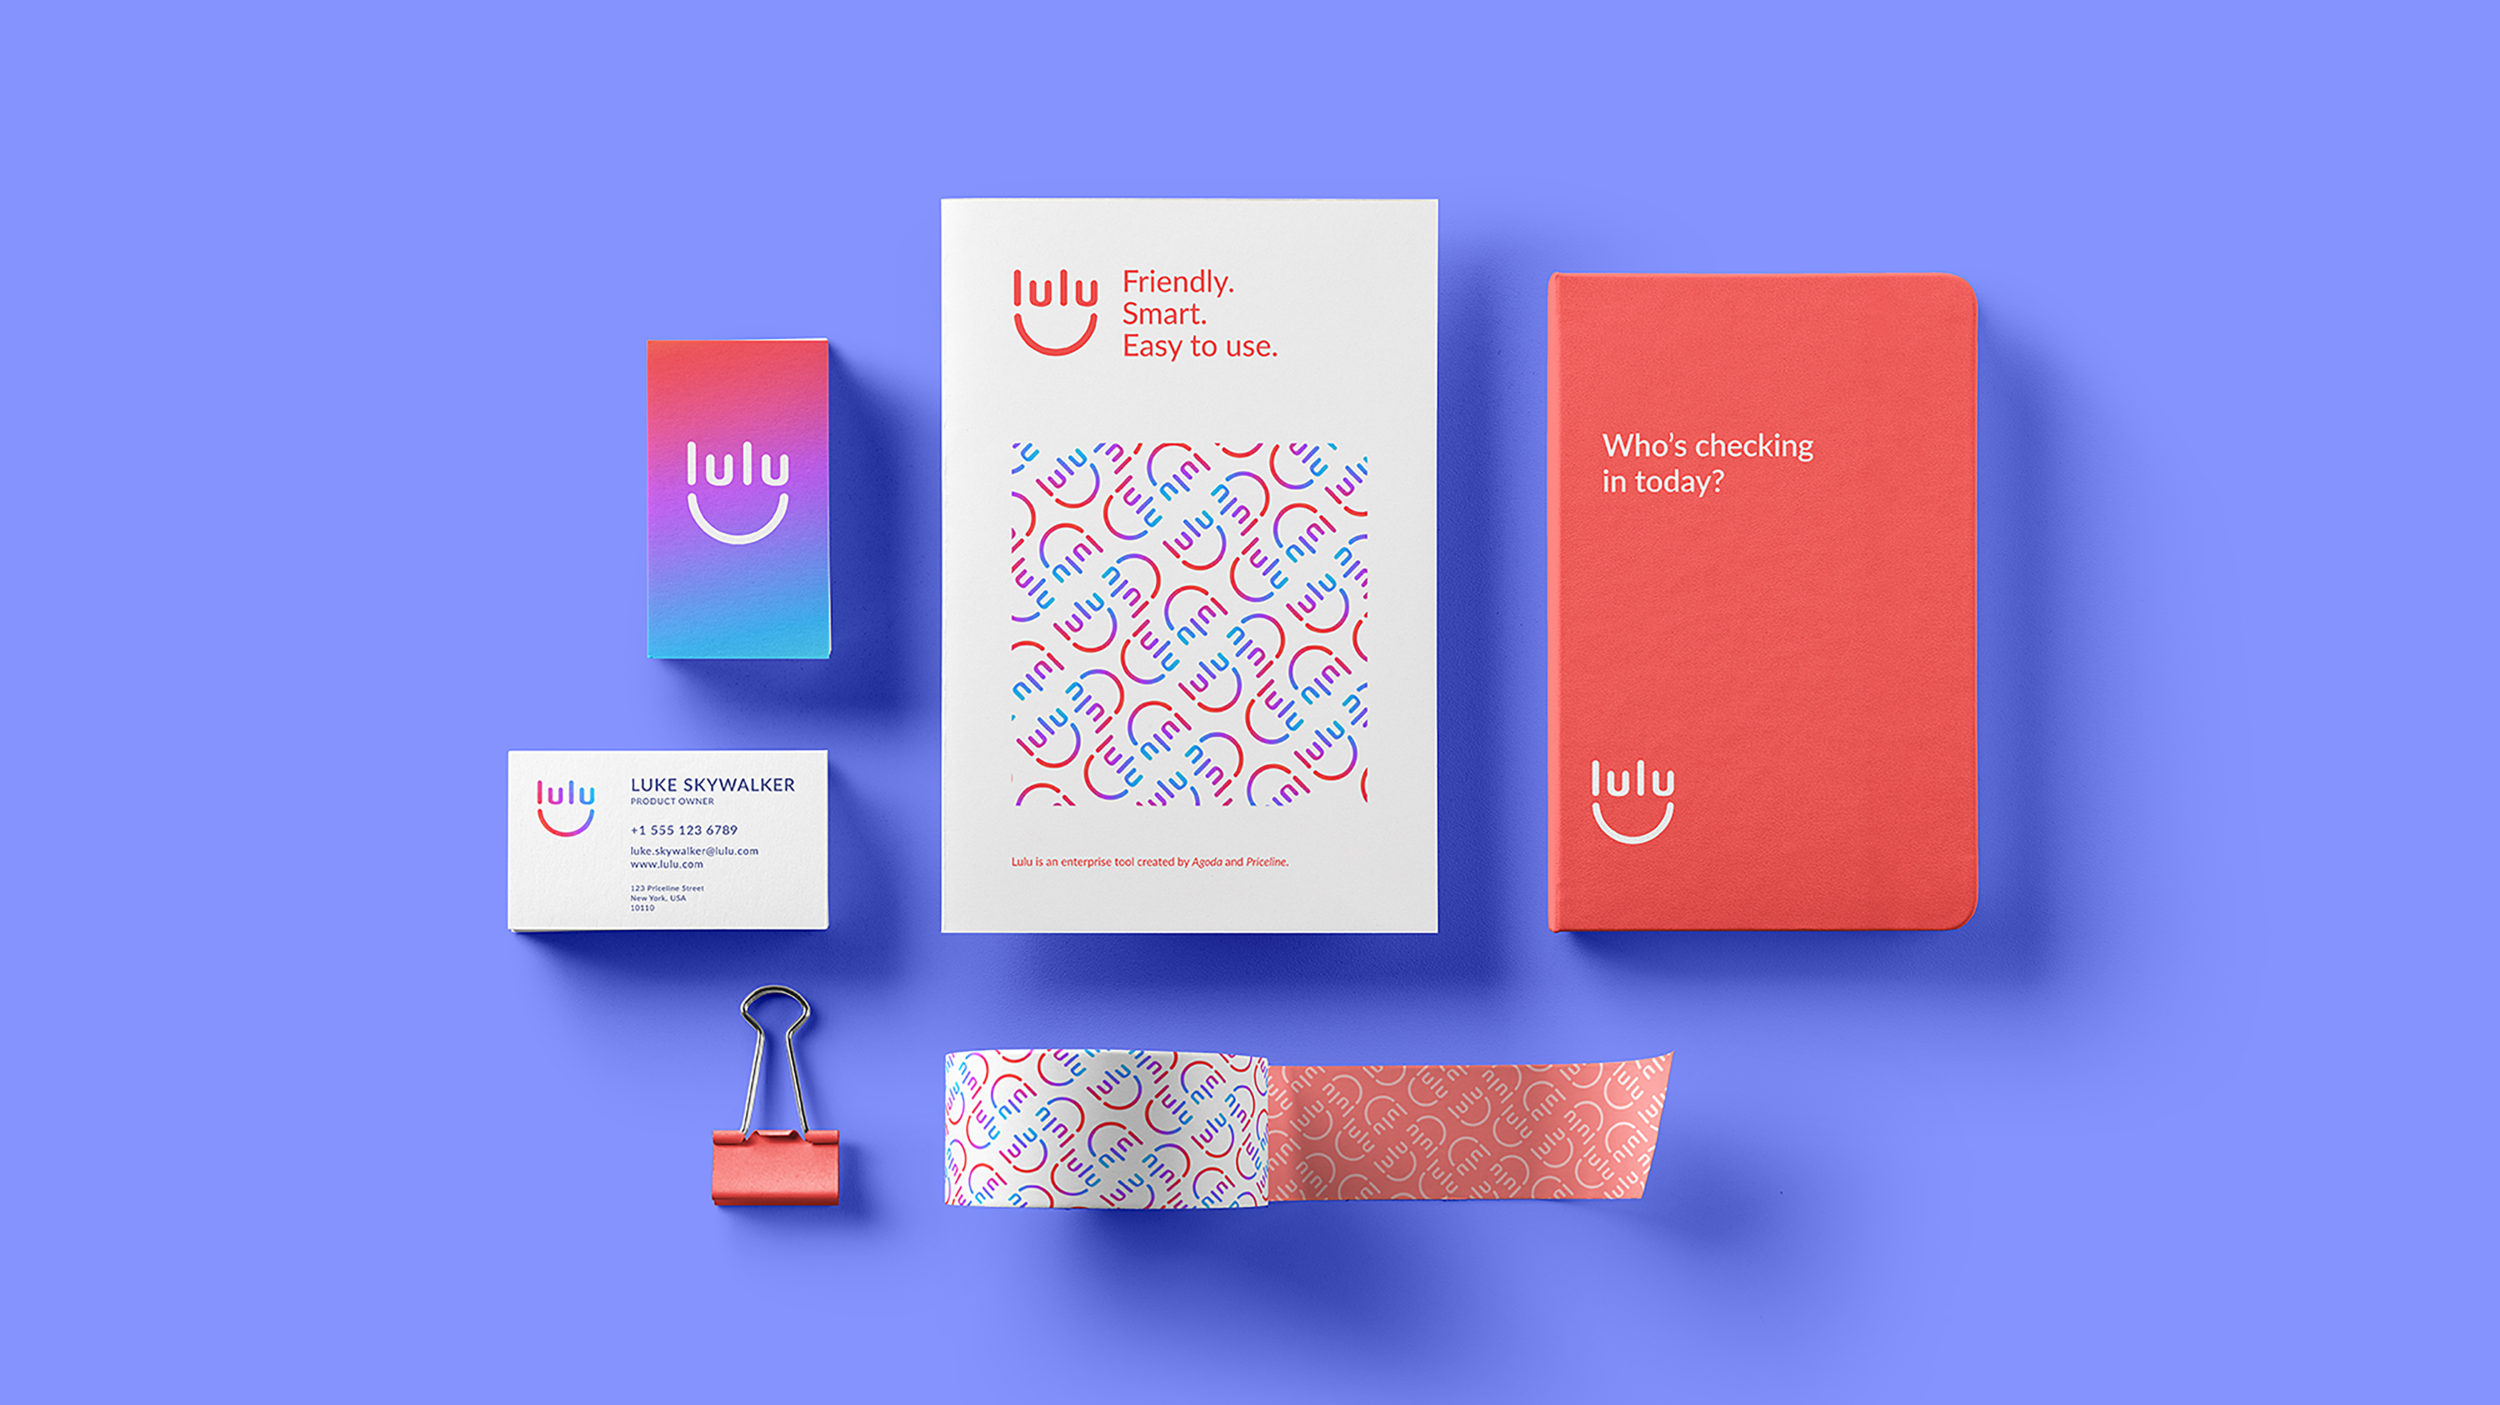 Collateral for Lulu, an internal enterprise tool for Agoda's supply partners.